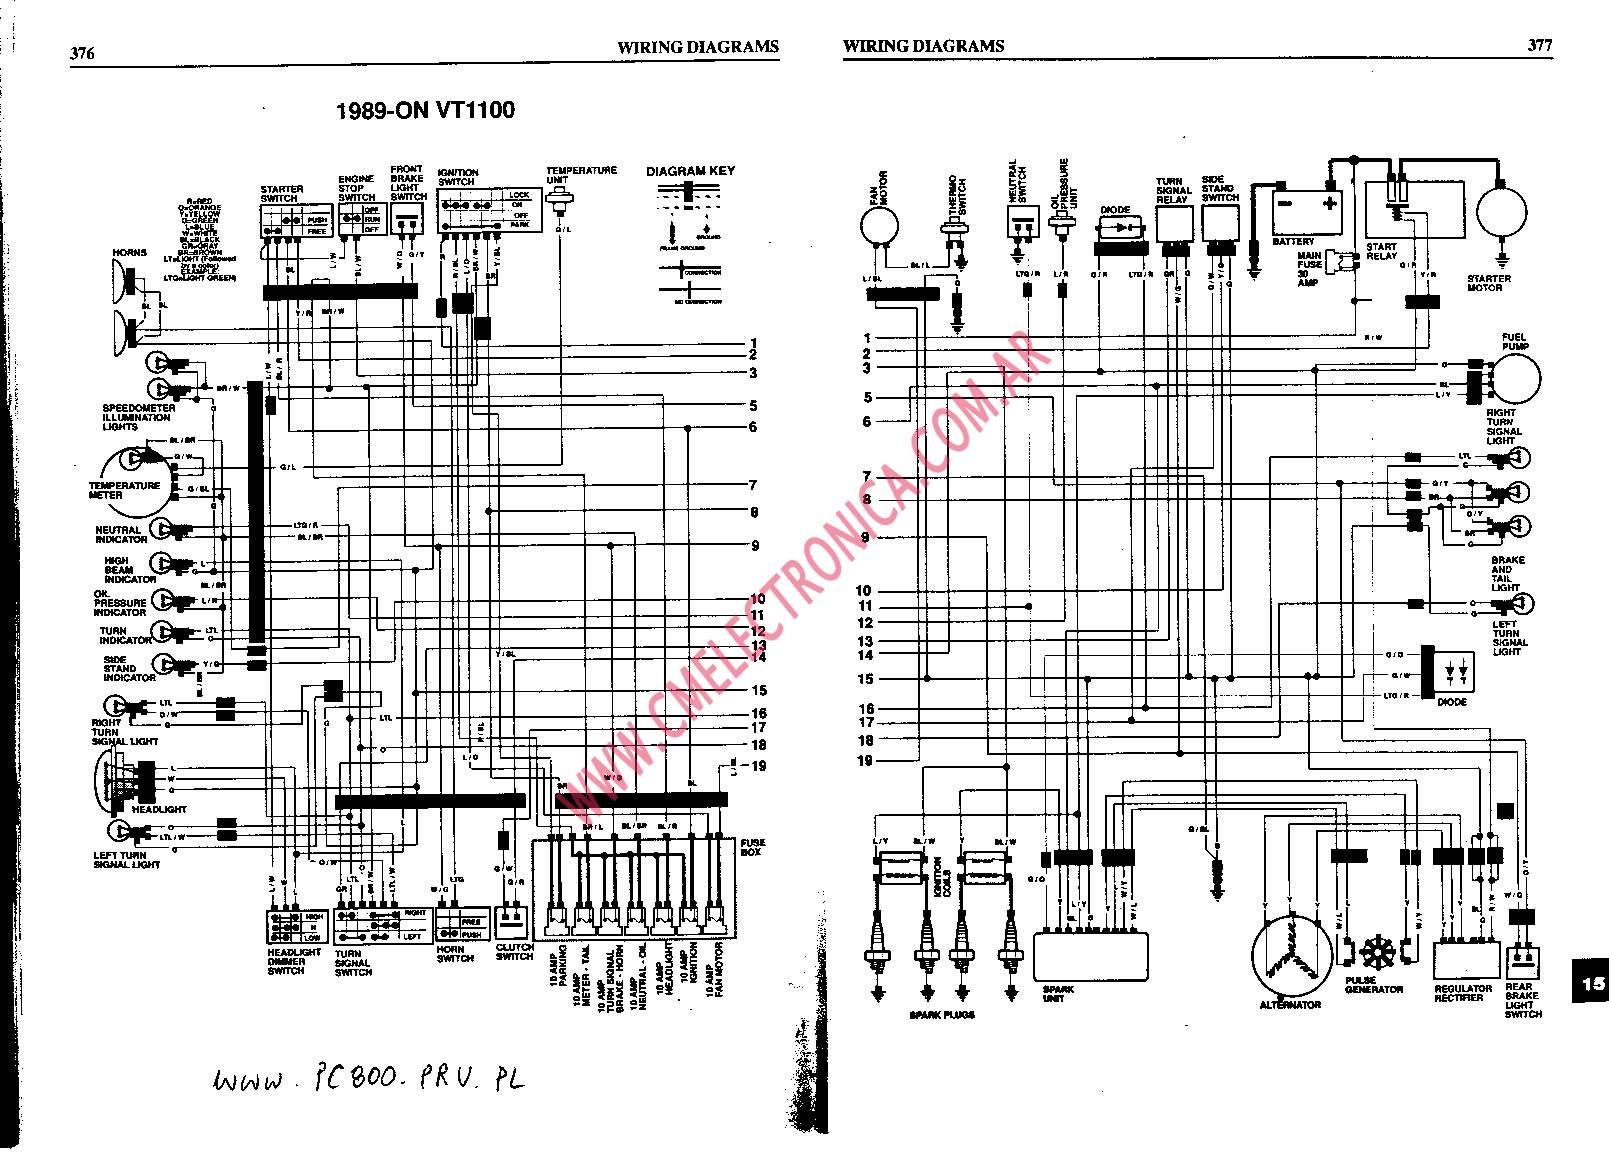 hight resolution of 1999 honda shadow wiring diagram wiring diagram used 1999 honda shadow 600 wiring diagram honda shadow 600 wiring diagram